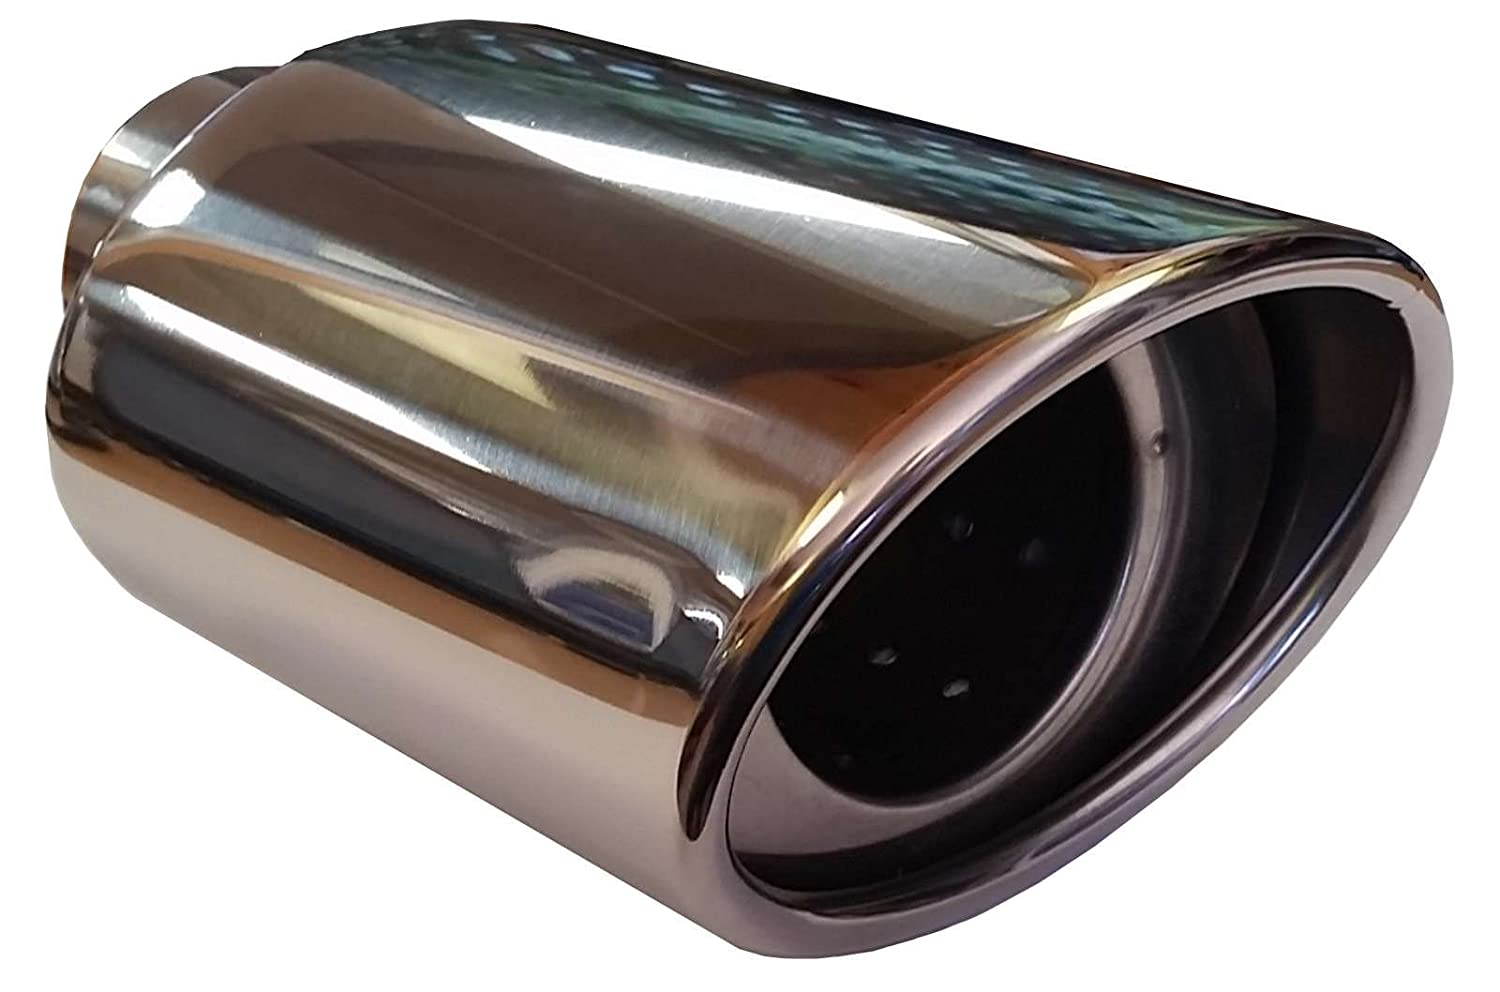 155MM STAINLESS STEEL OVAL CAR EXHAUST TAIL PIPE TRIM CHROME TIP Fits 51-55MM